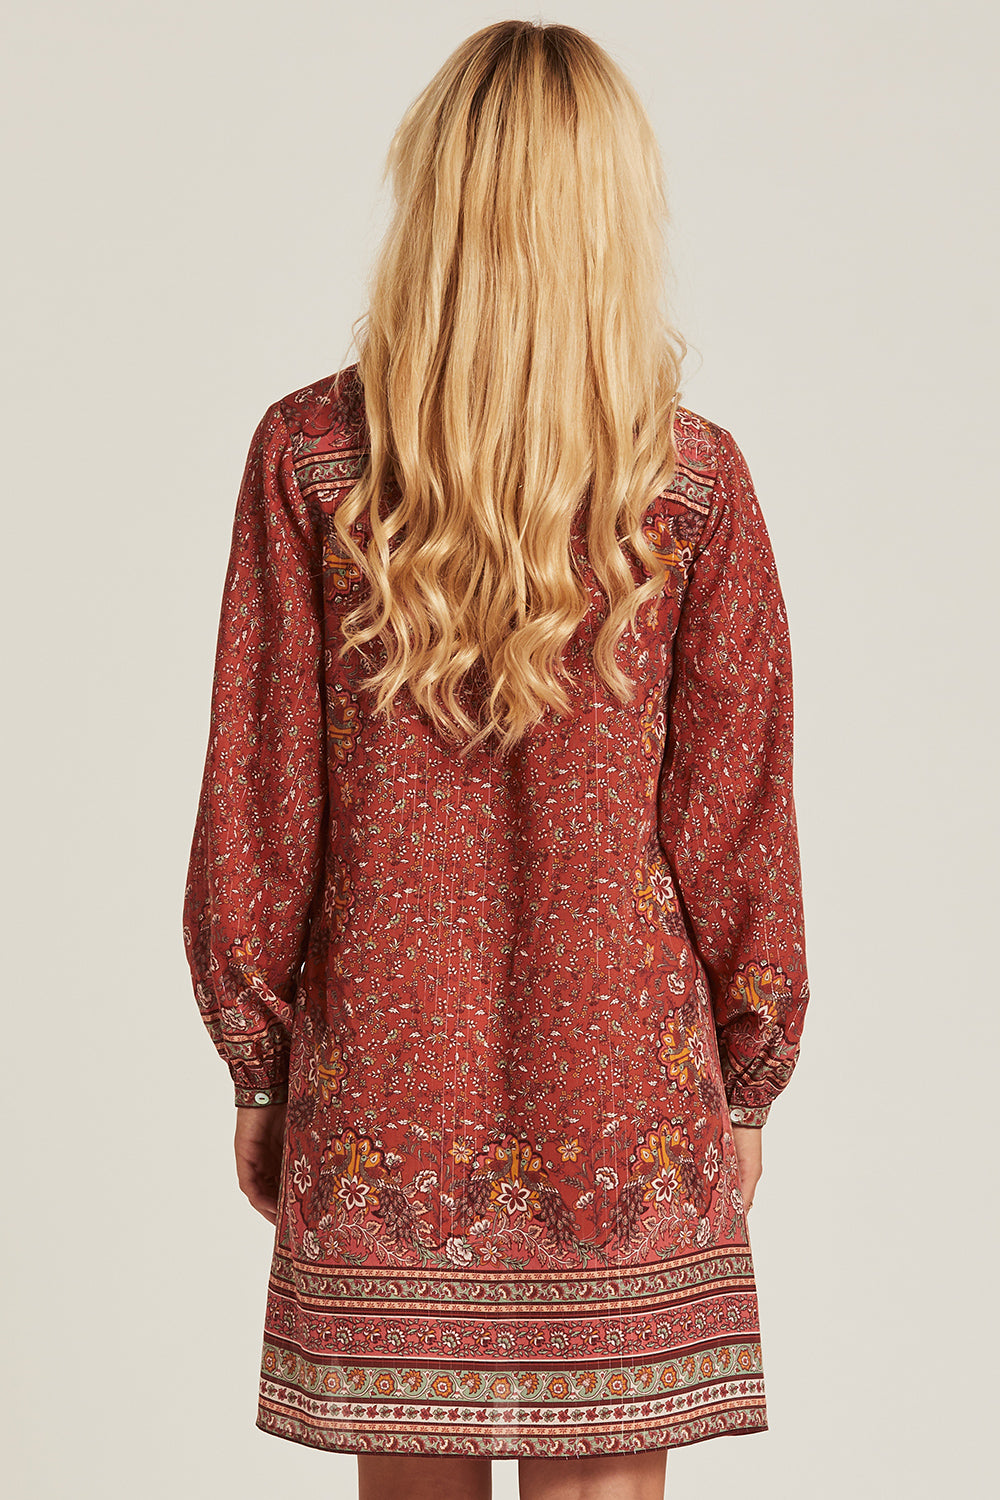 Nastassia Tunic Dress in Rooibos